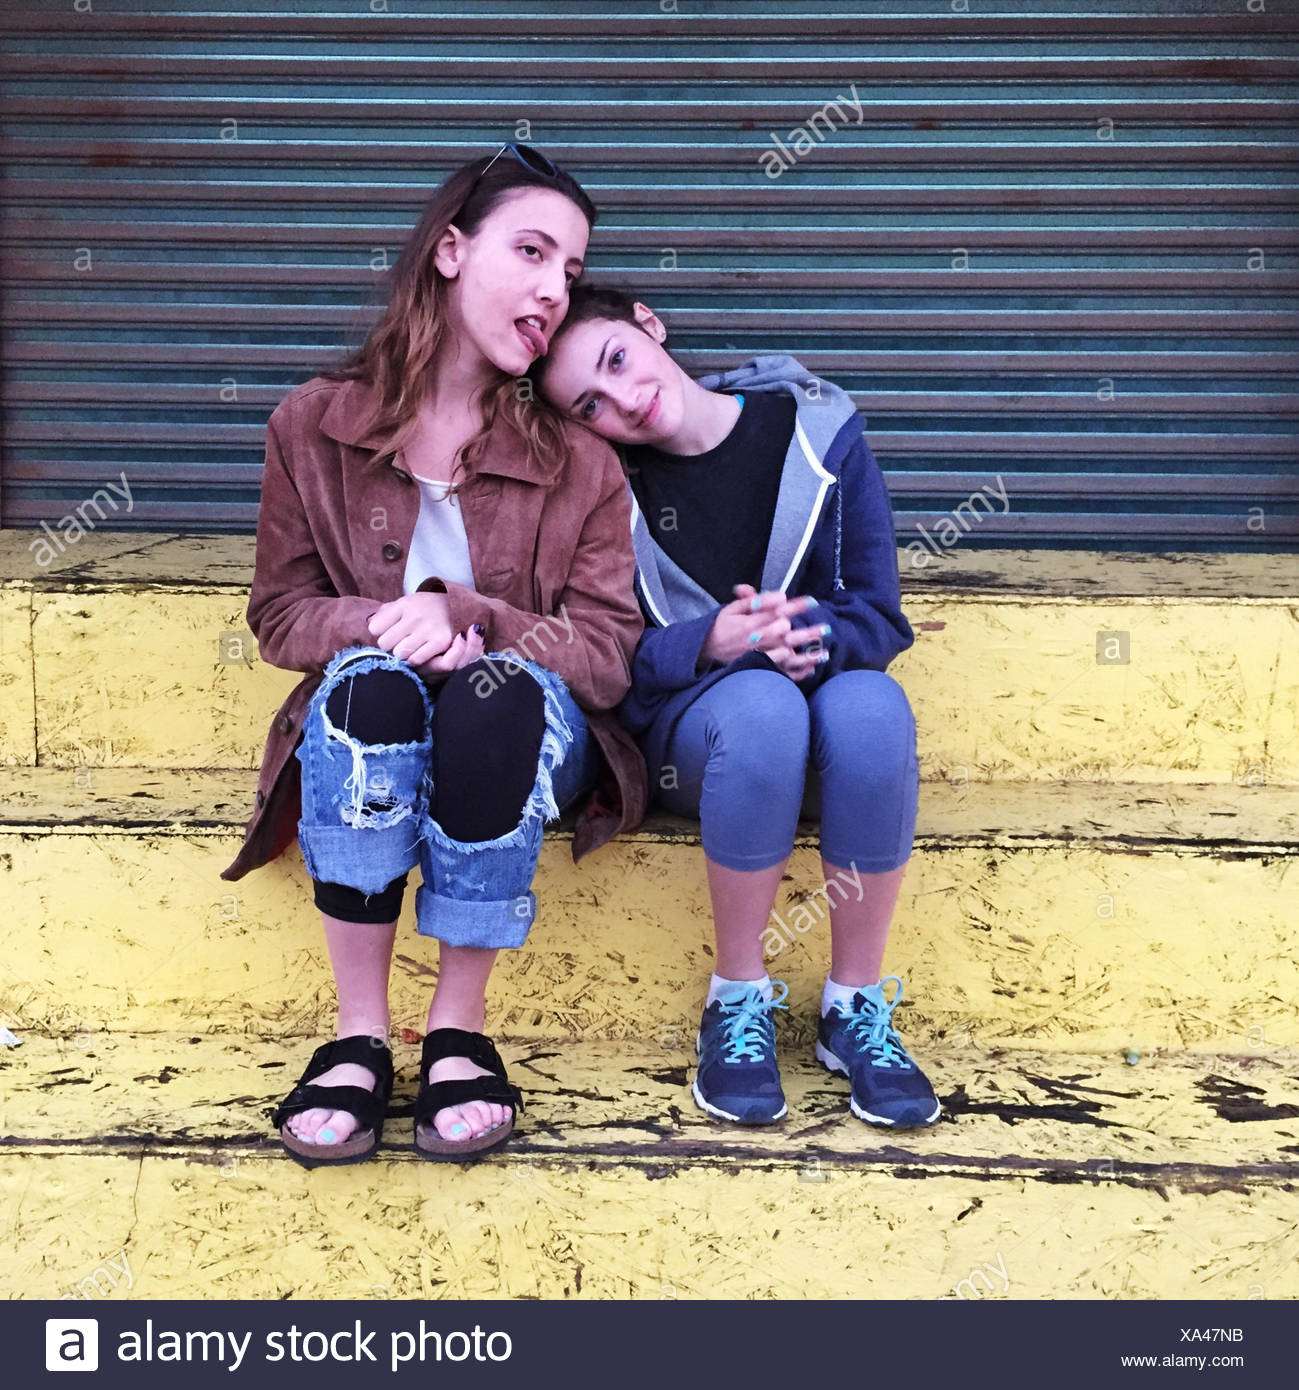 Two girls sitting on a step, messing about - Stock Image